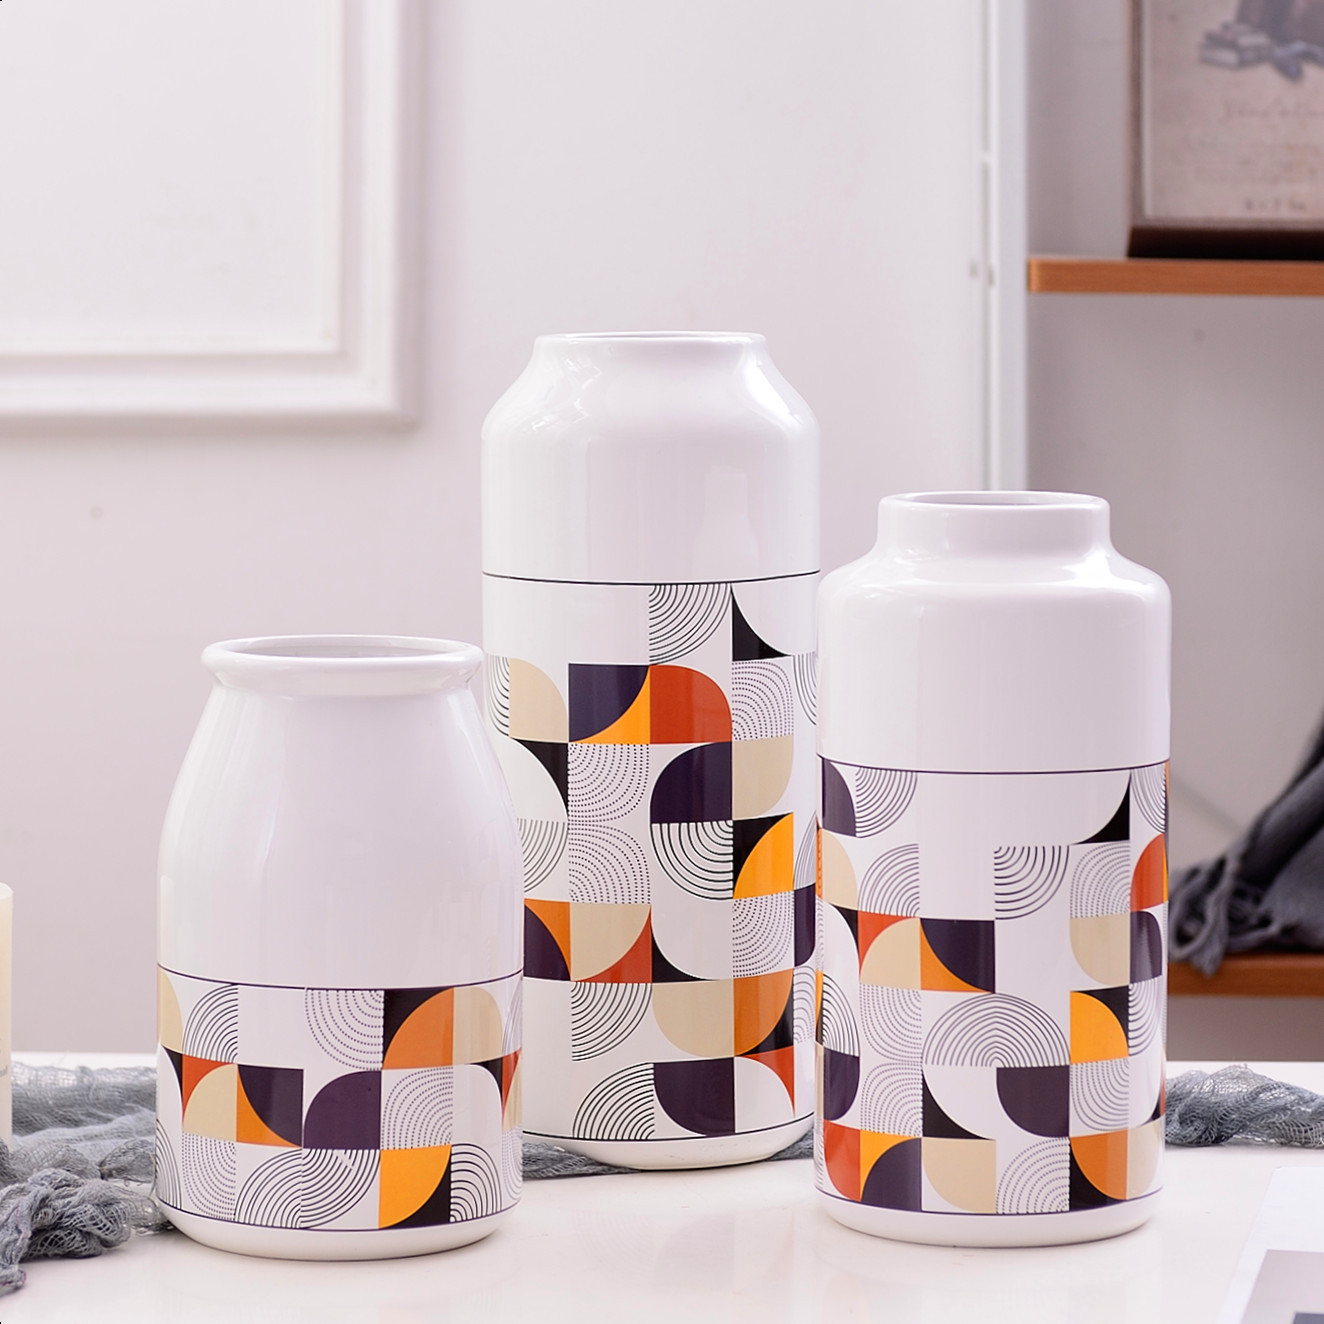 Abstract Shape Pattern Vase for Decorating Your Living Room